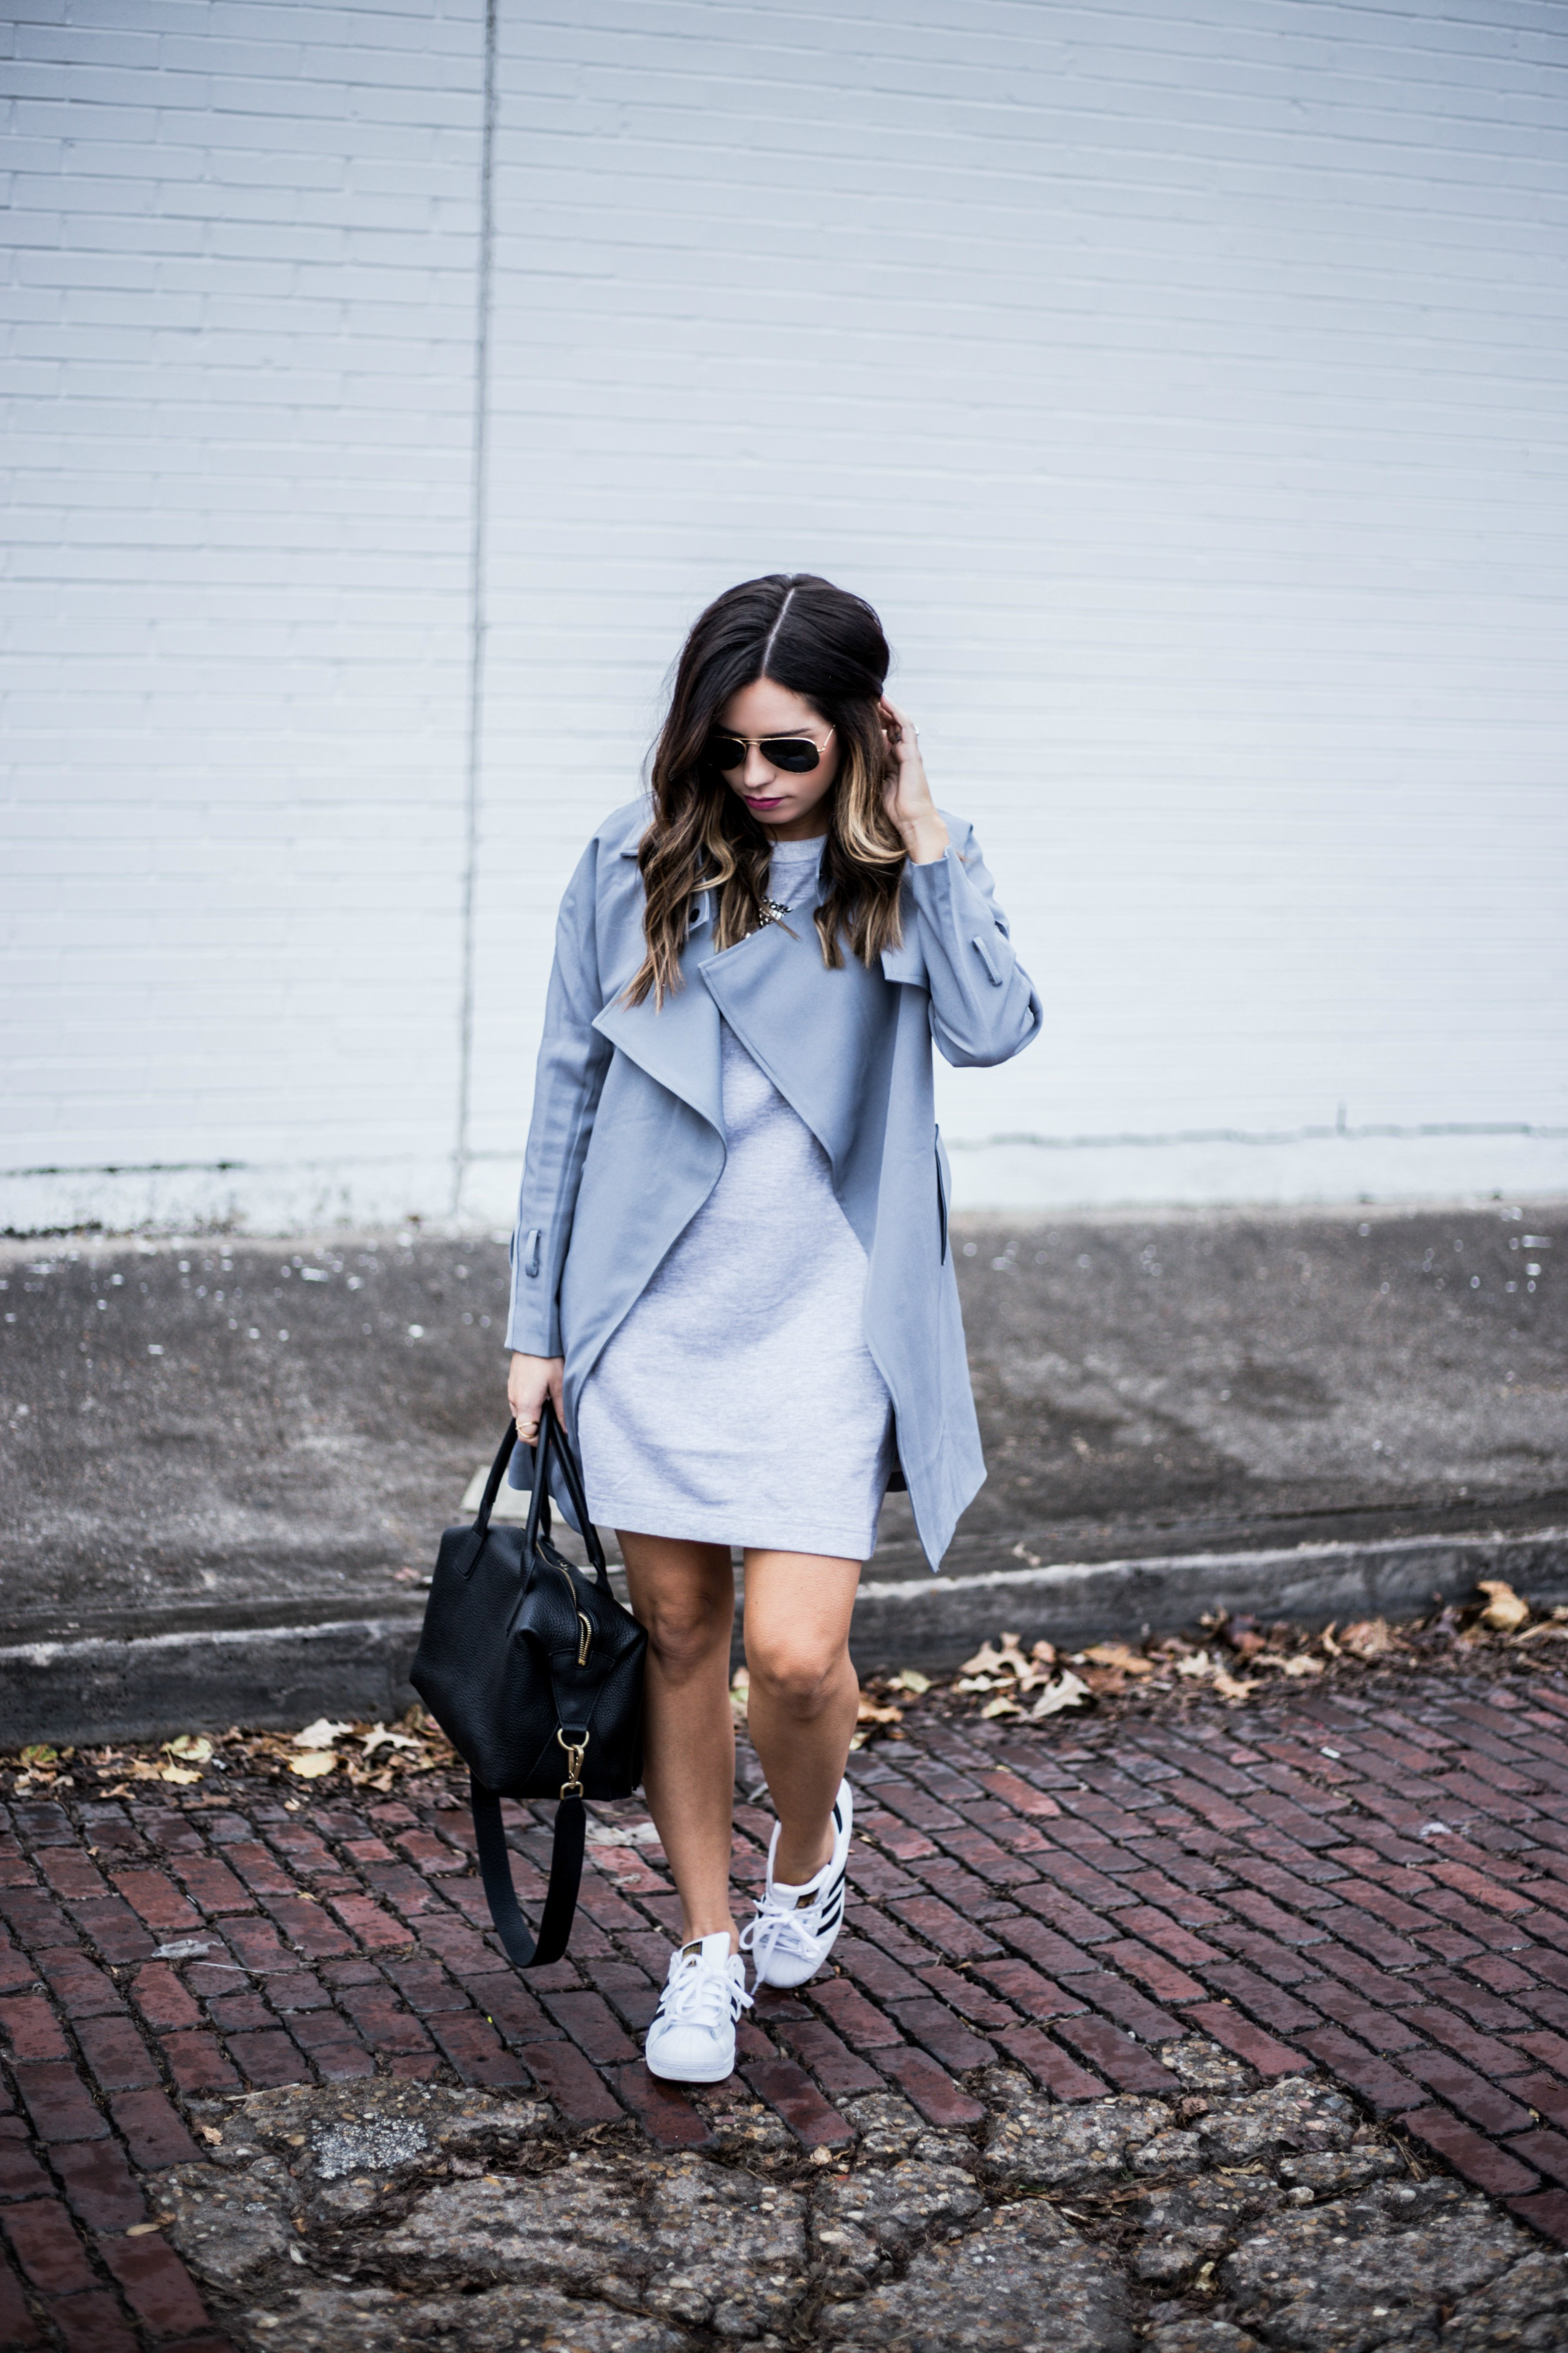 Grey trench coat with a light grey dress and sneakers | what's trending in fashion 2016